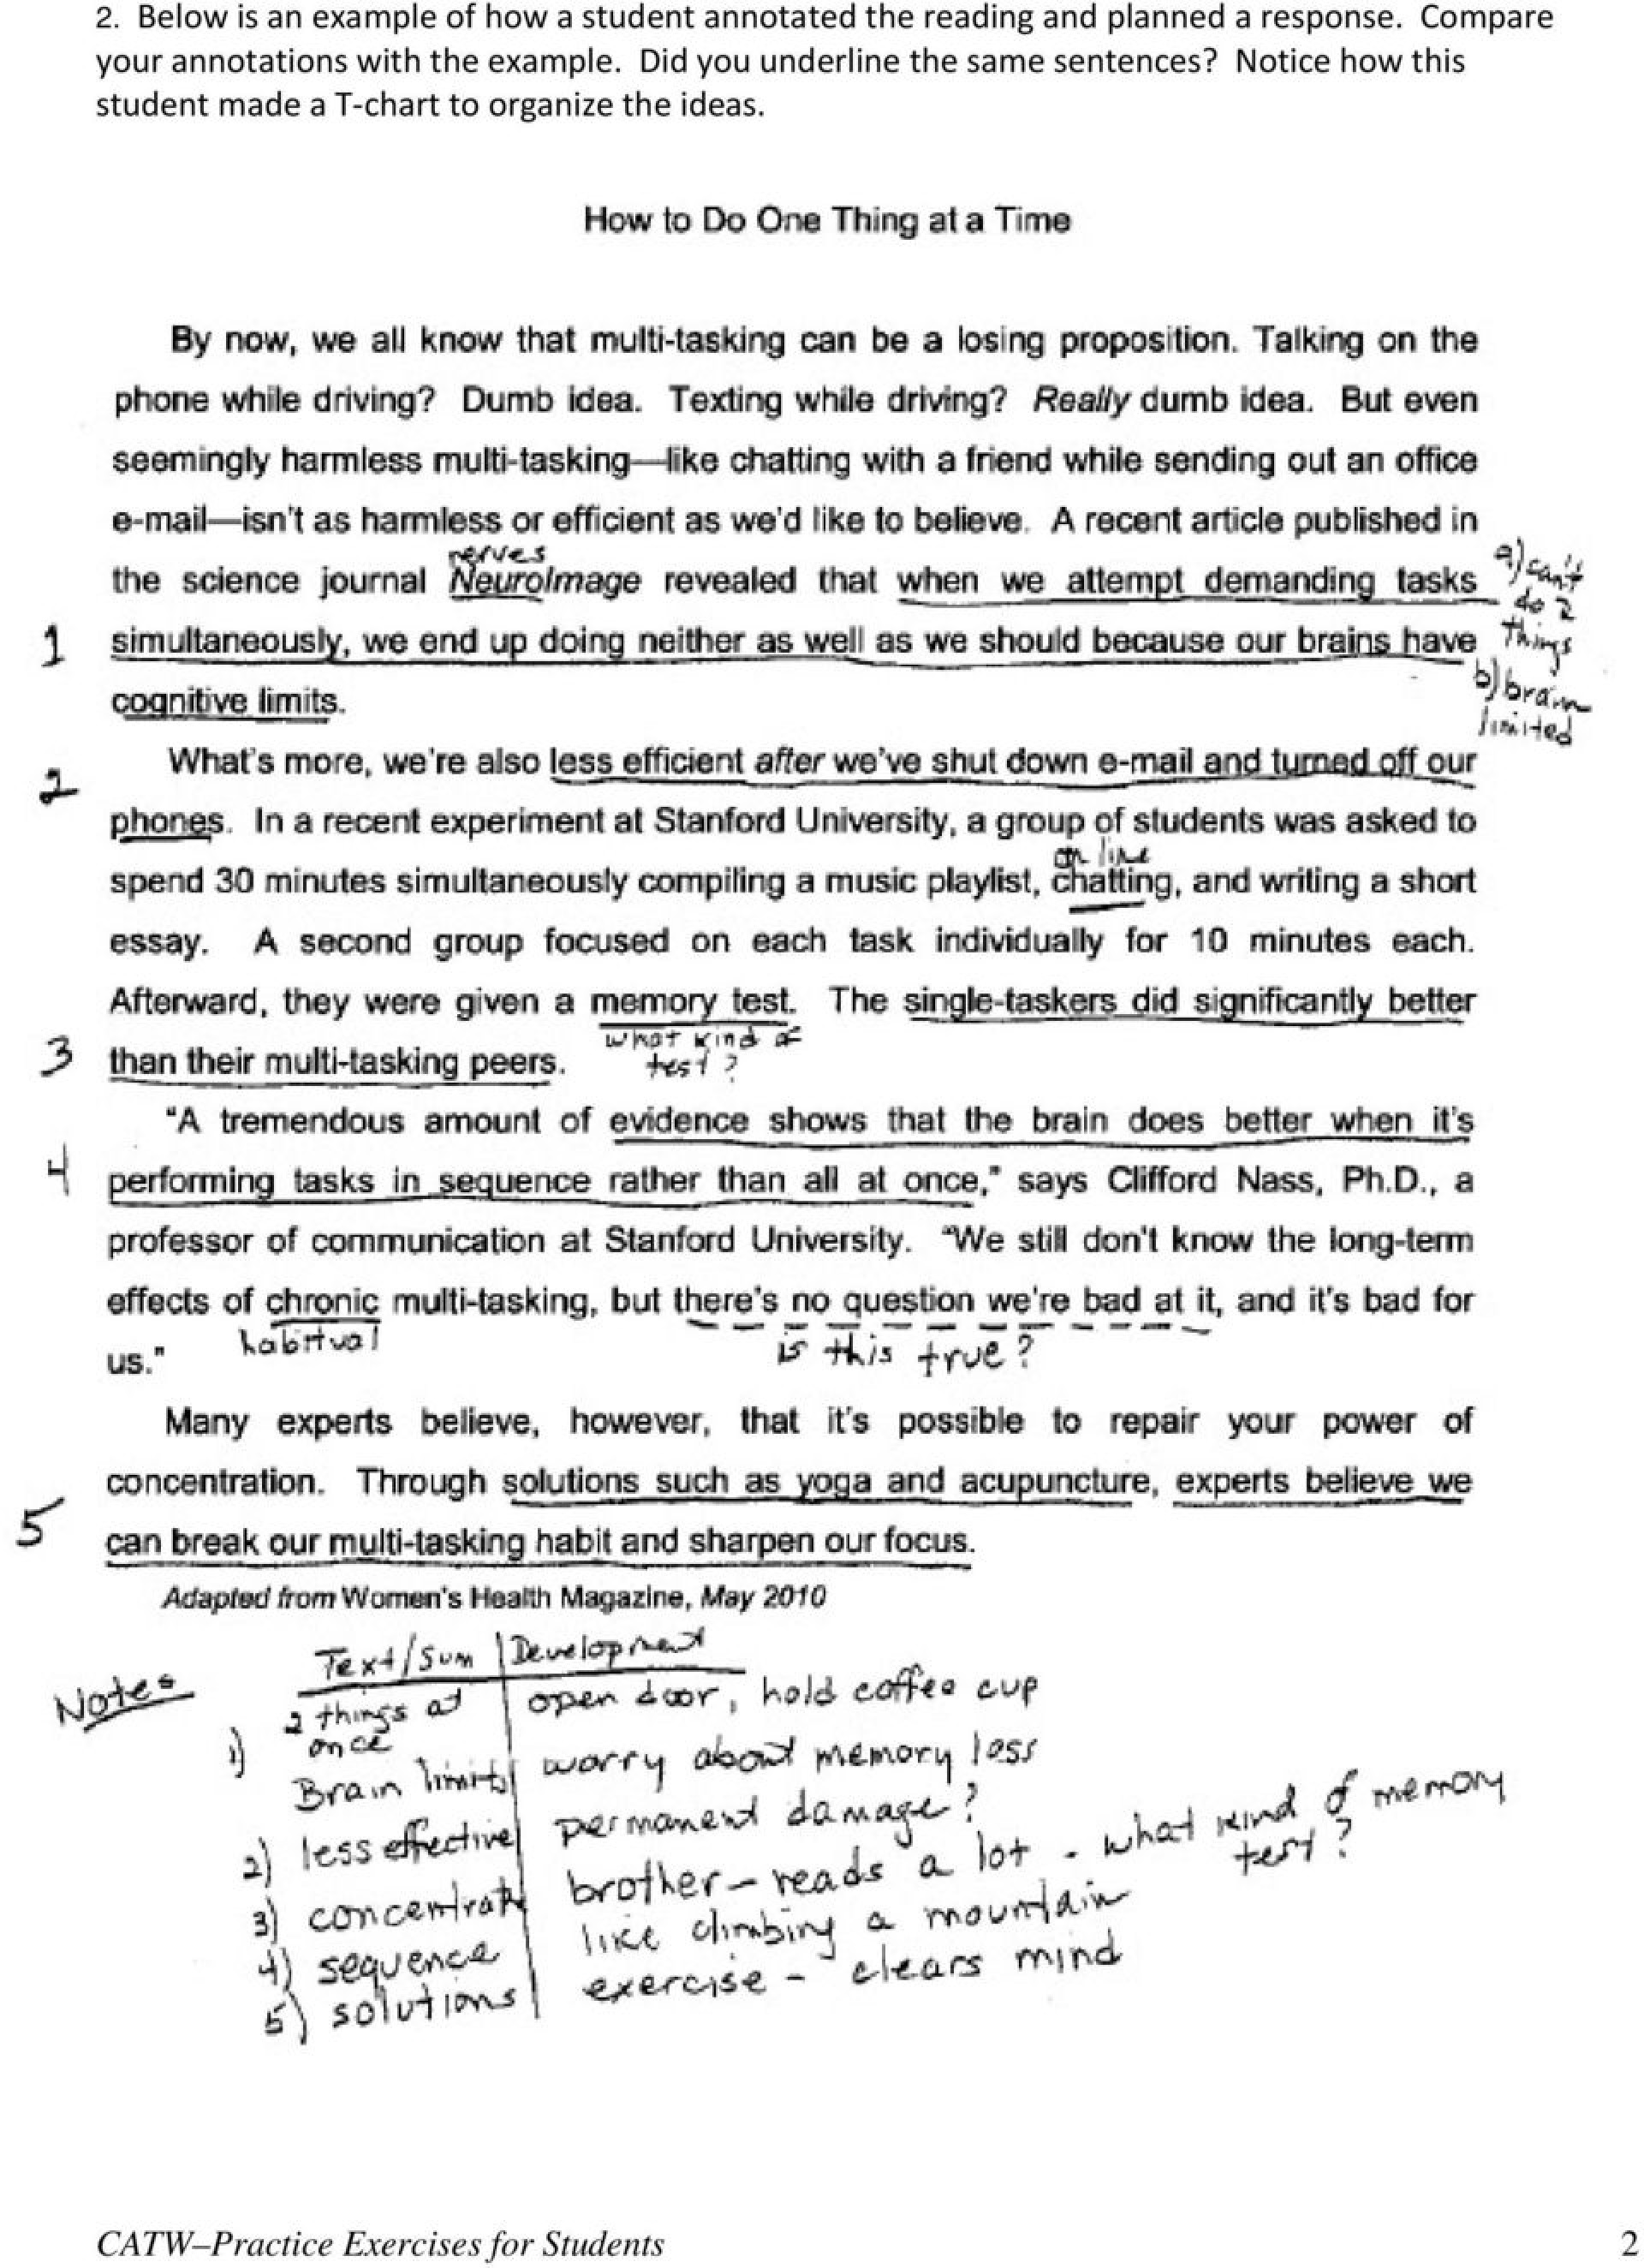 012 Research Paper Topics Medical Page 3 Impressive For Technology Students Malpractice 1920